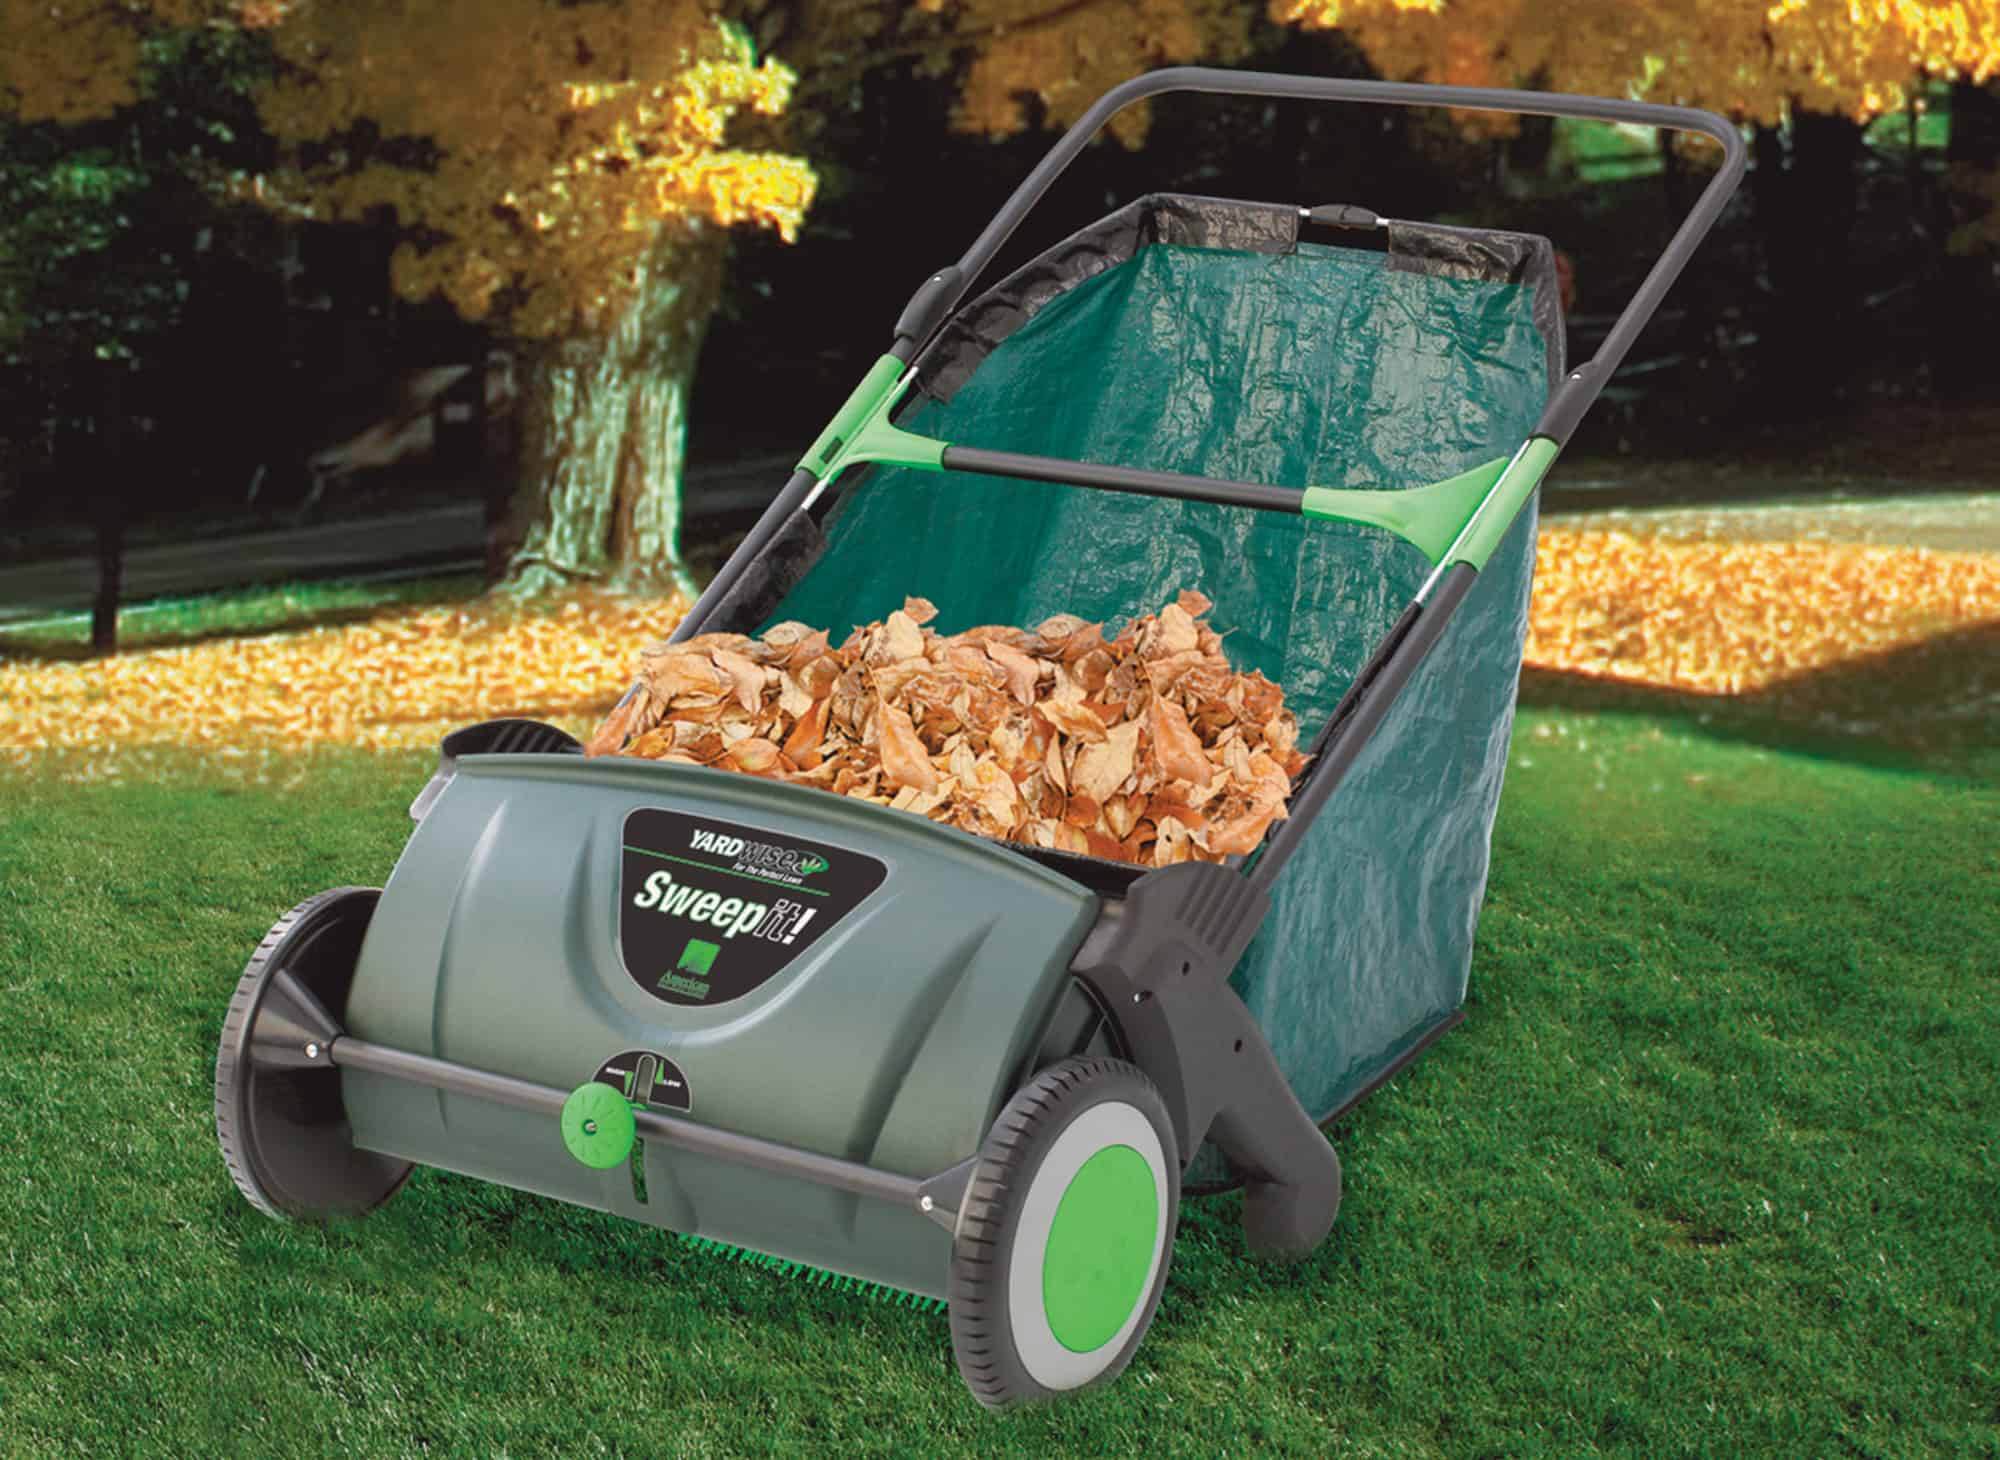 Sweep It – lawn vacuum